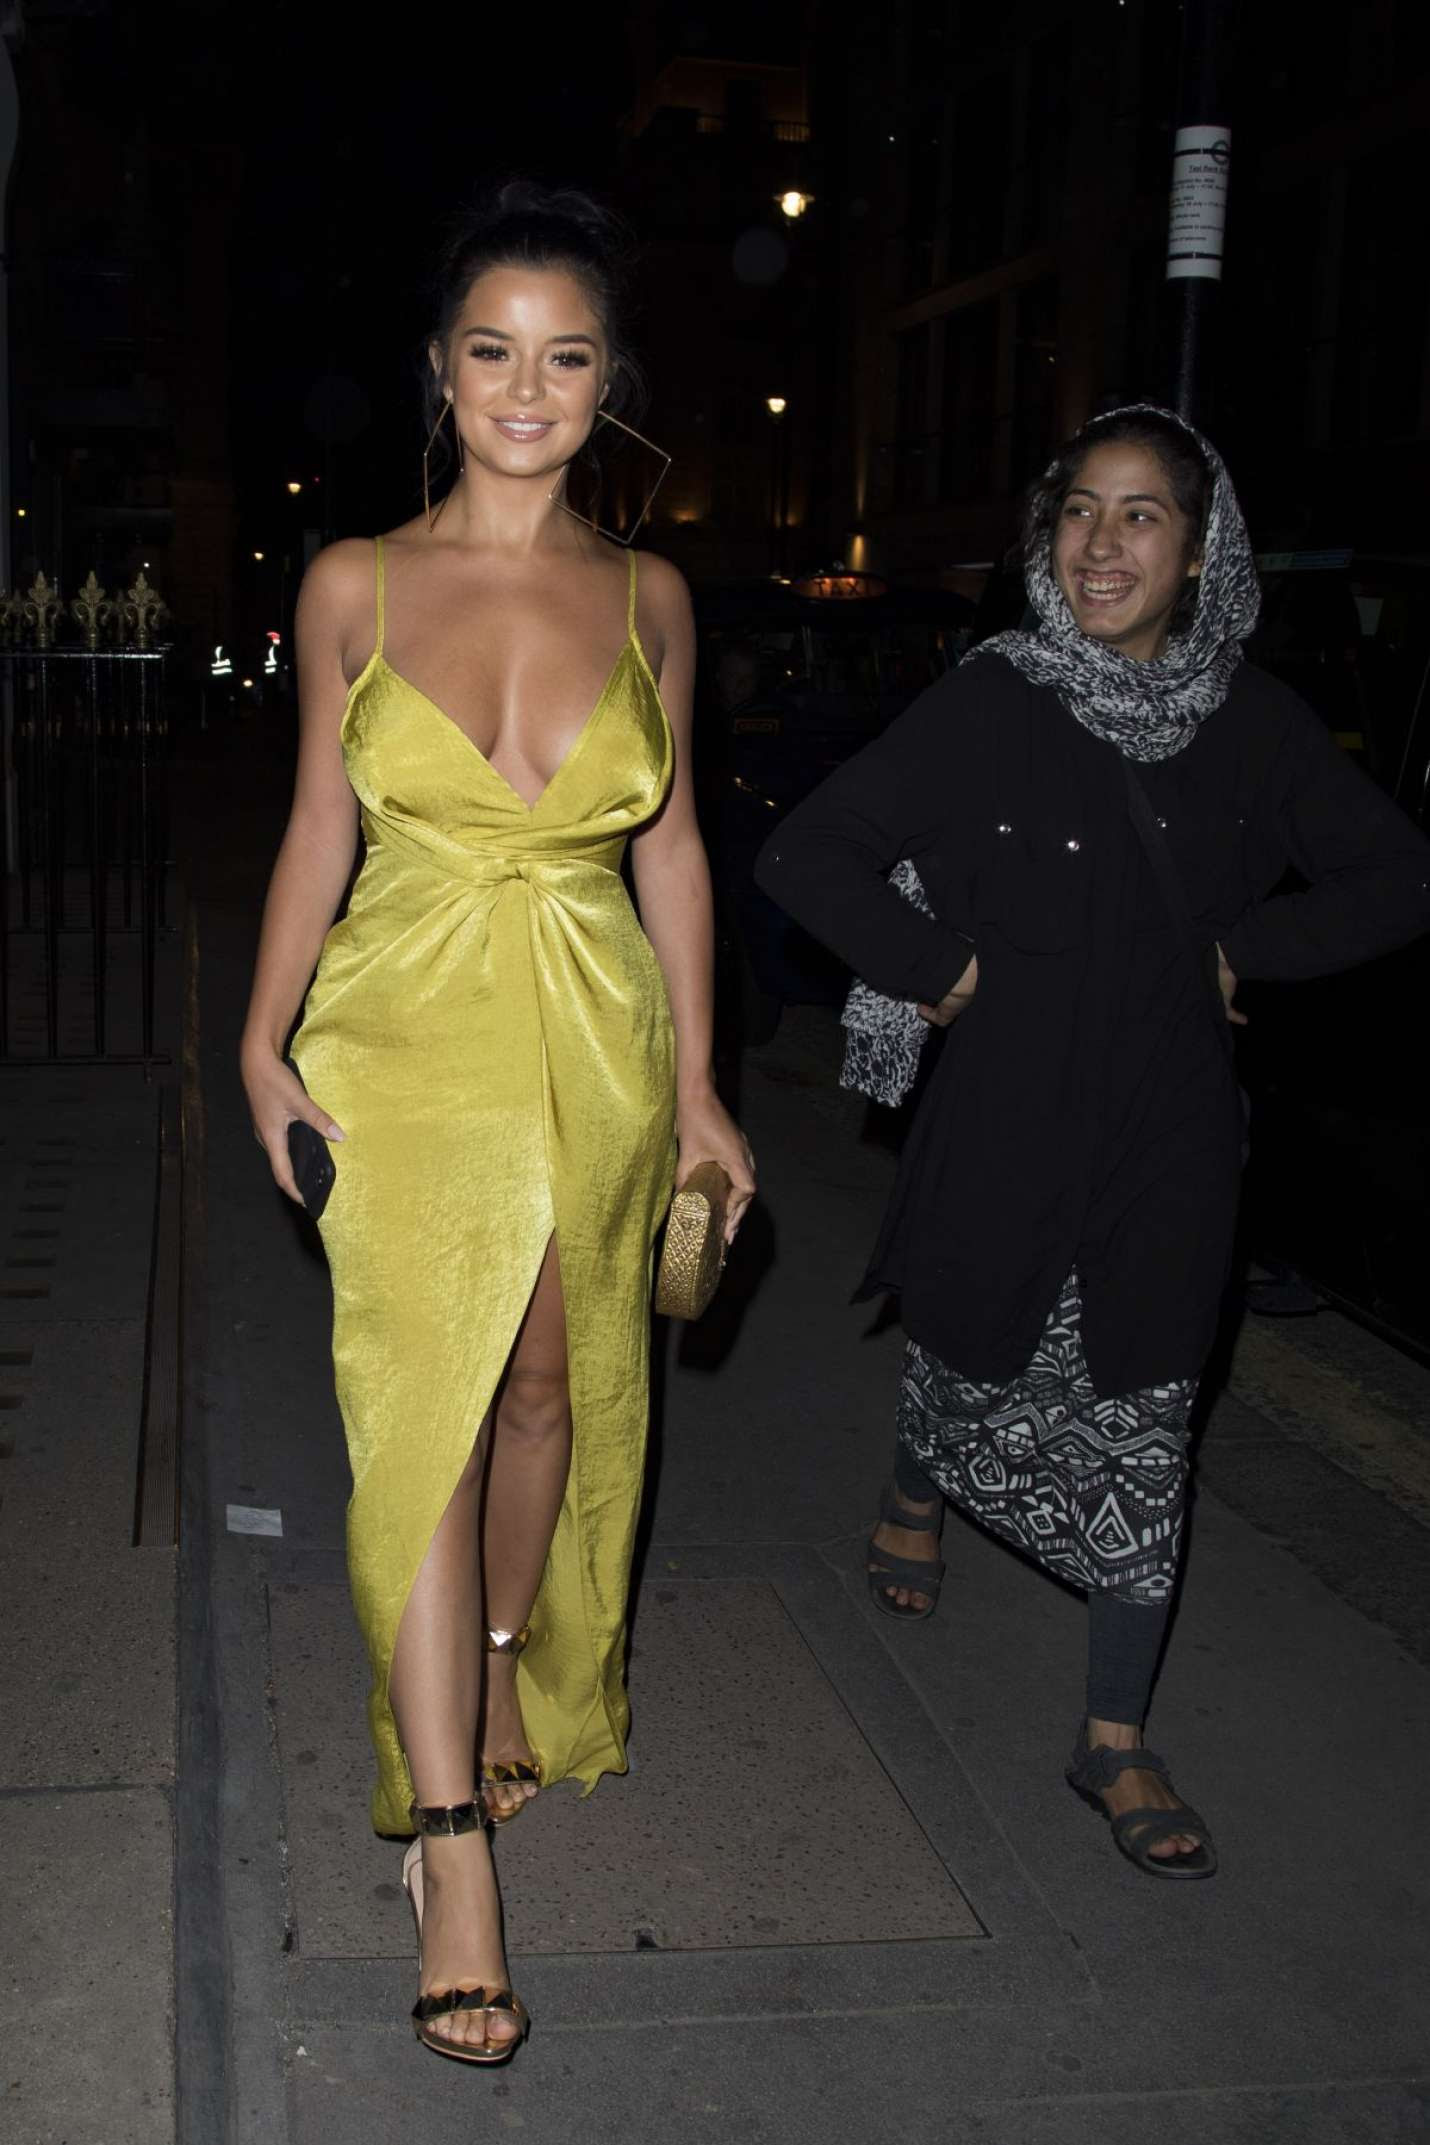 Demi Rose At Monkey House Bar In London  Indian Girls